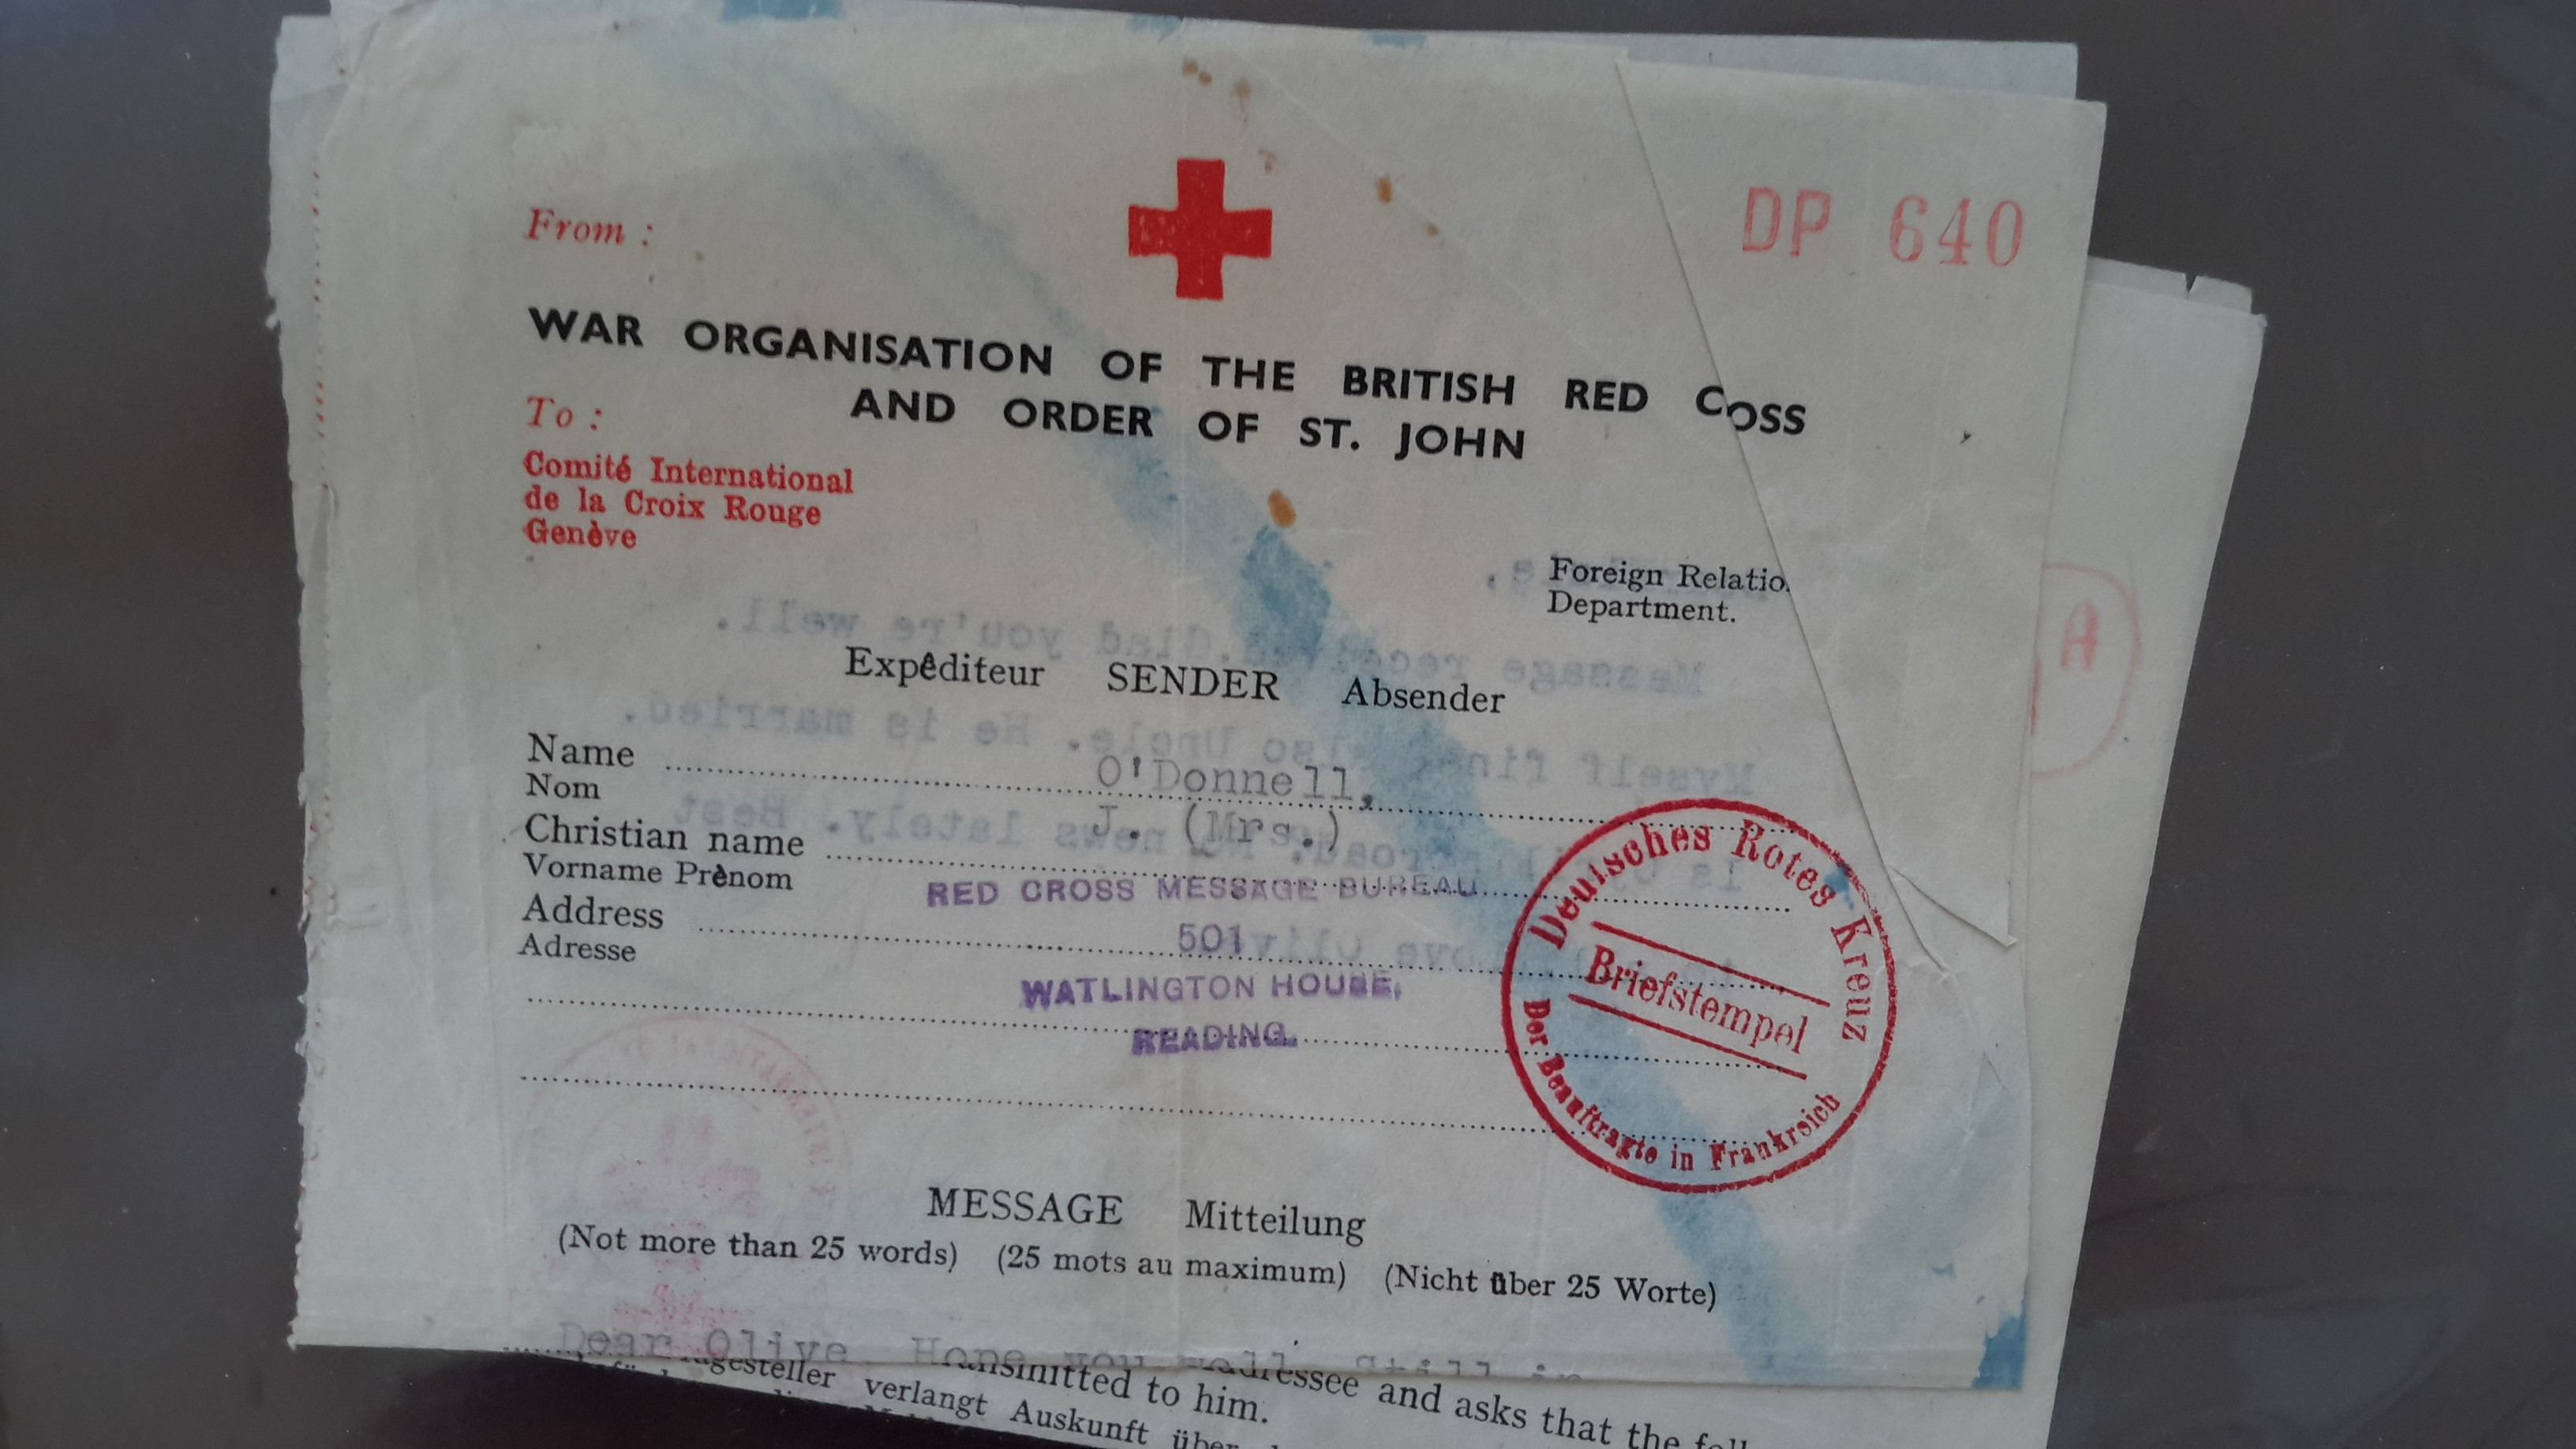 Red Cross Messages front